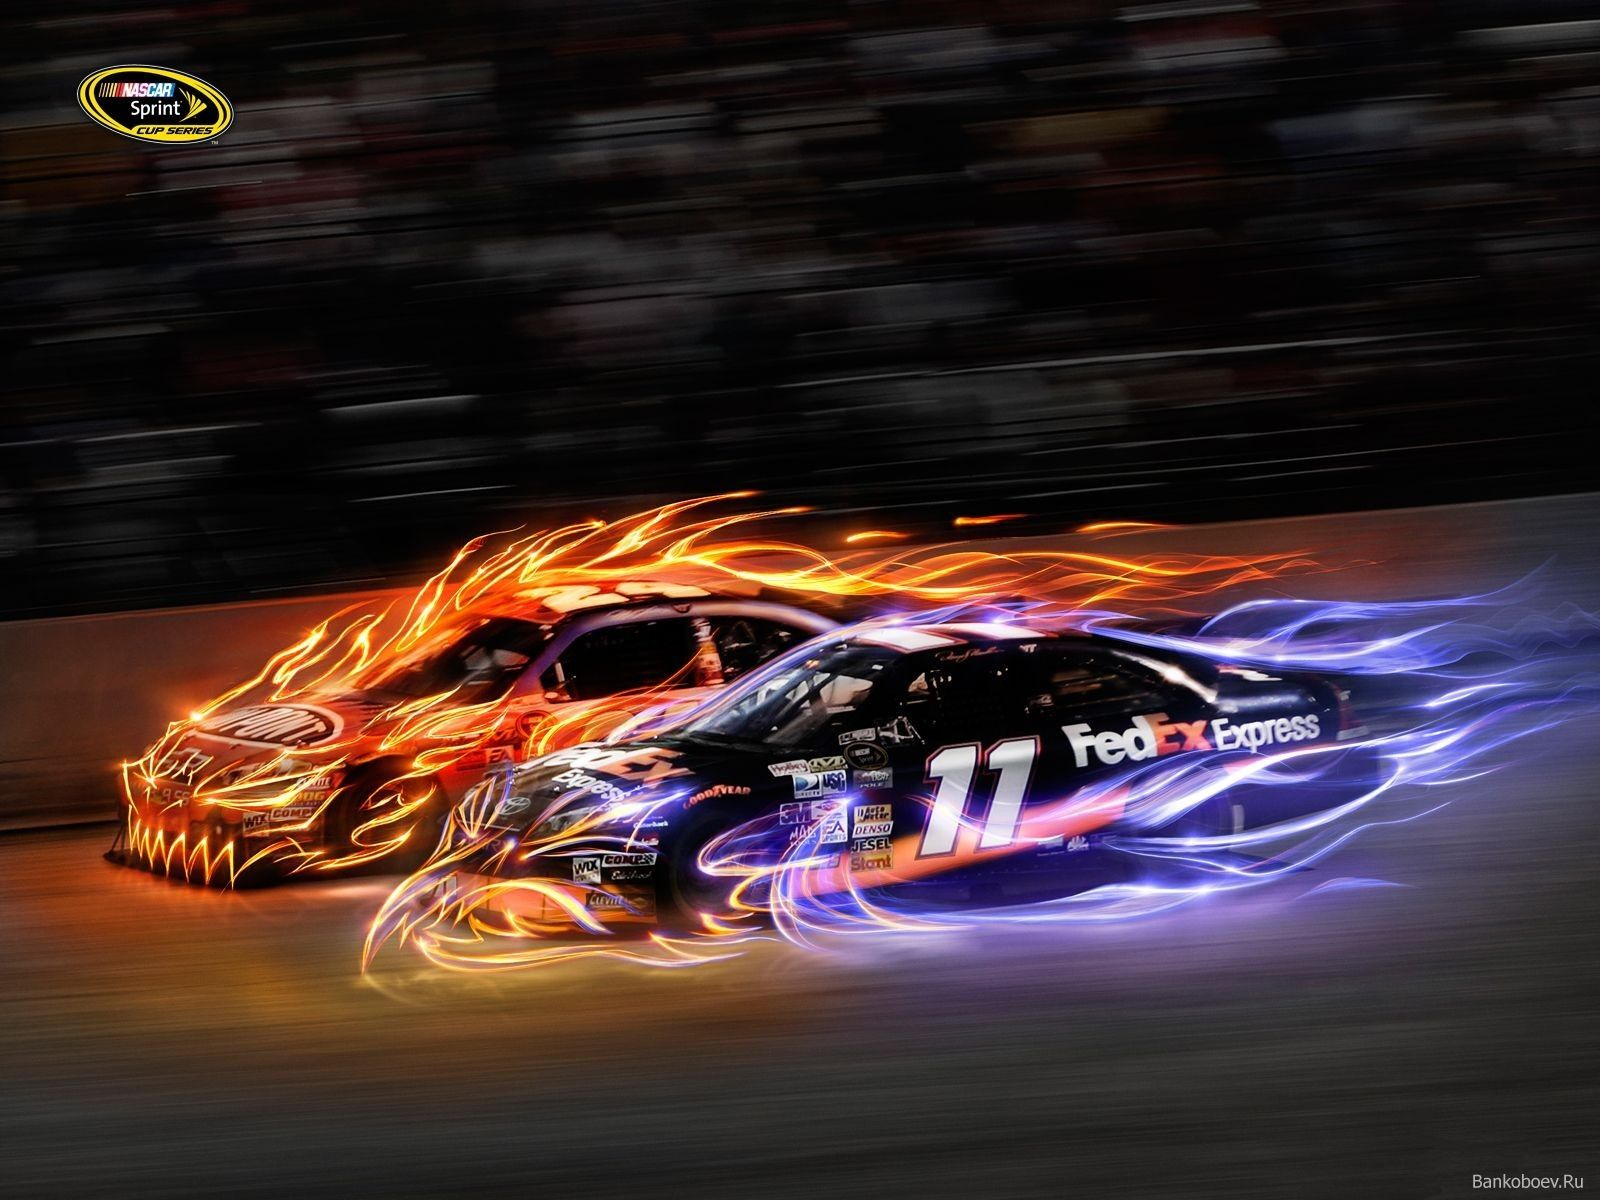 Hq Nascar Duelo Wallpapers Car Wallpapers Wallpaper Wallpaper Pictures Nascar